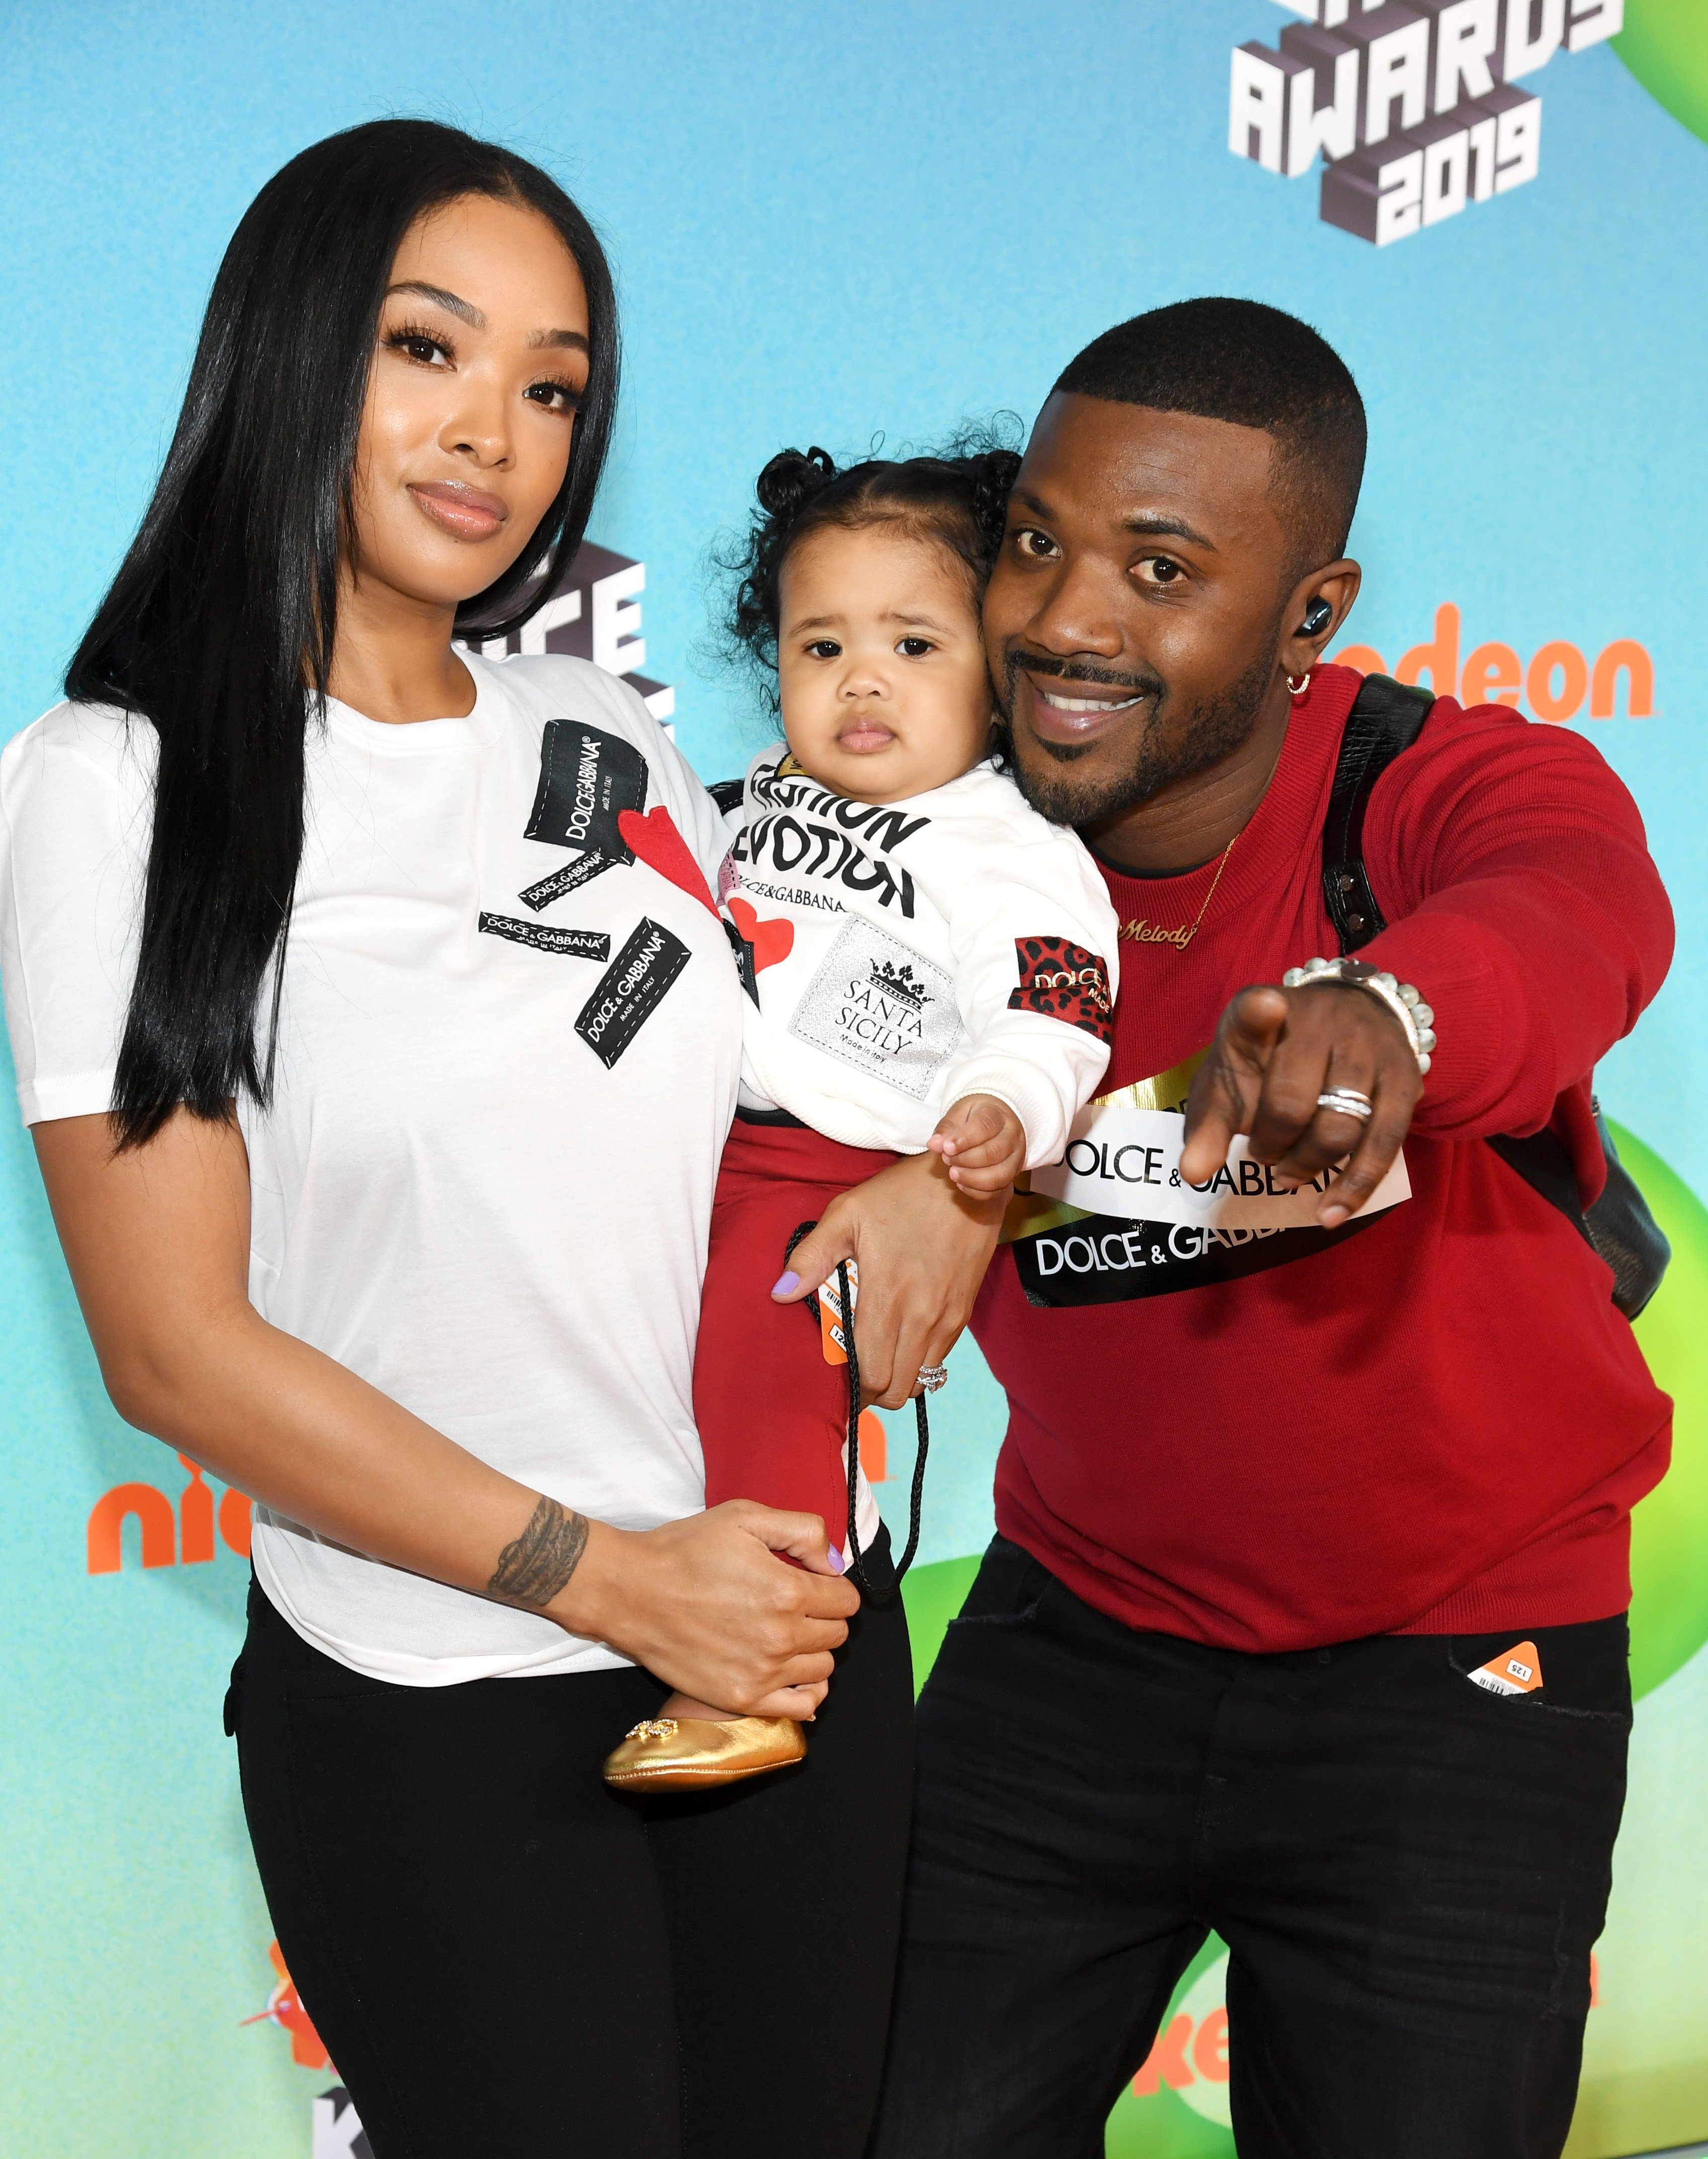 Princess Love, Ray J and their daughter, Melody at the red carpet of Nickelodeon's Kid's Choice Awards in March 2019. | Photo: Getty Images